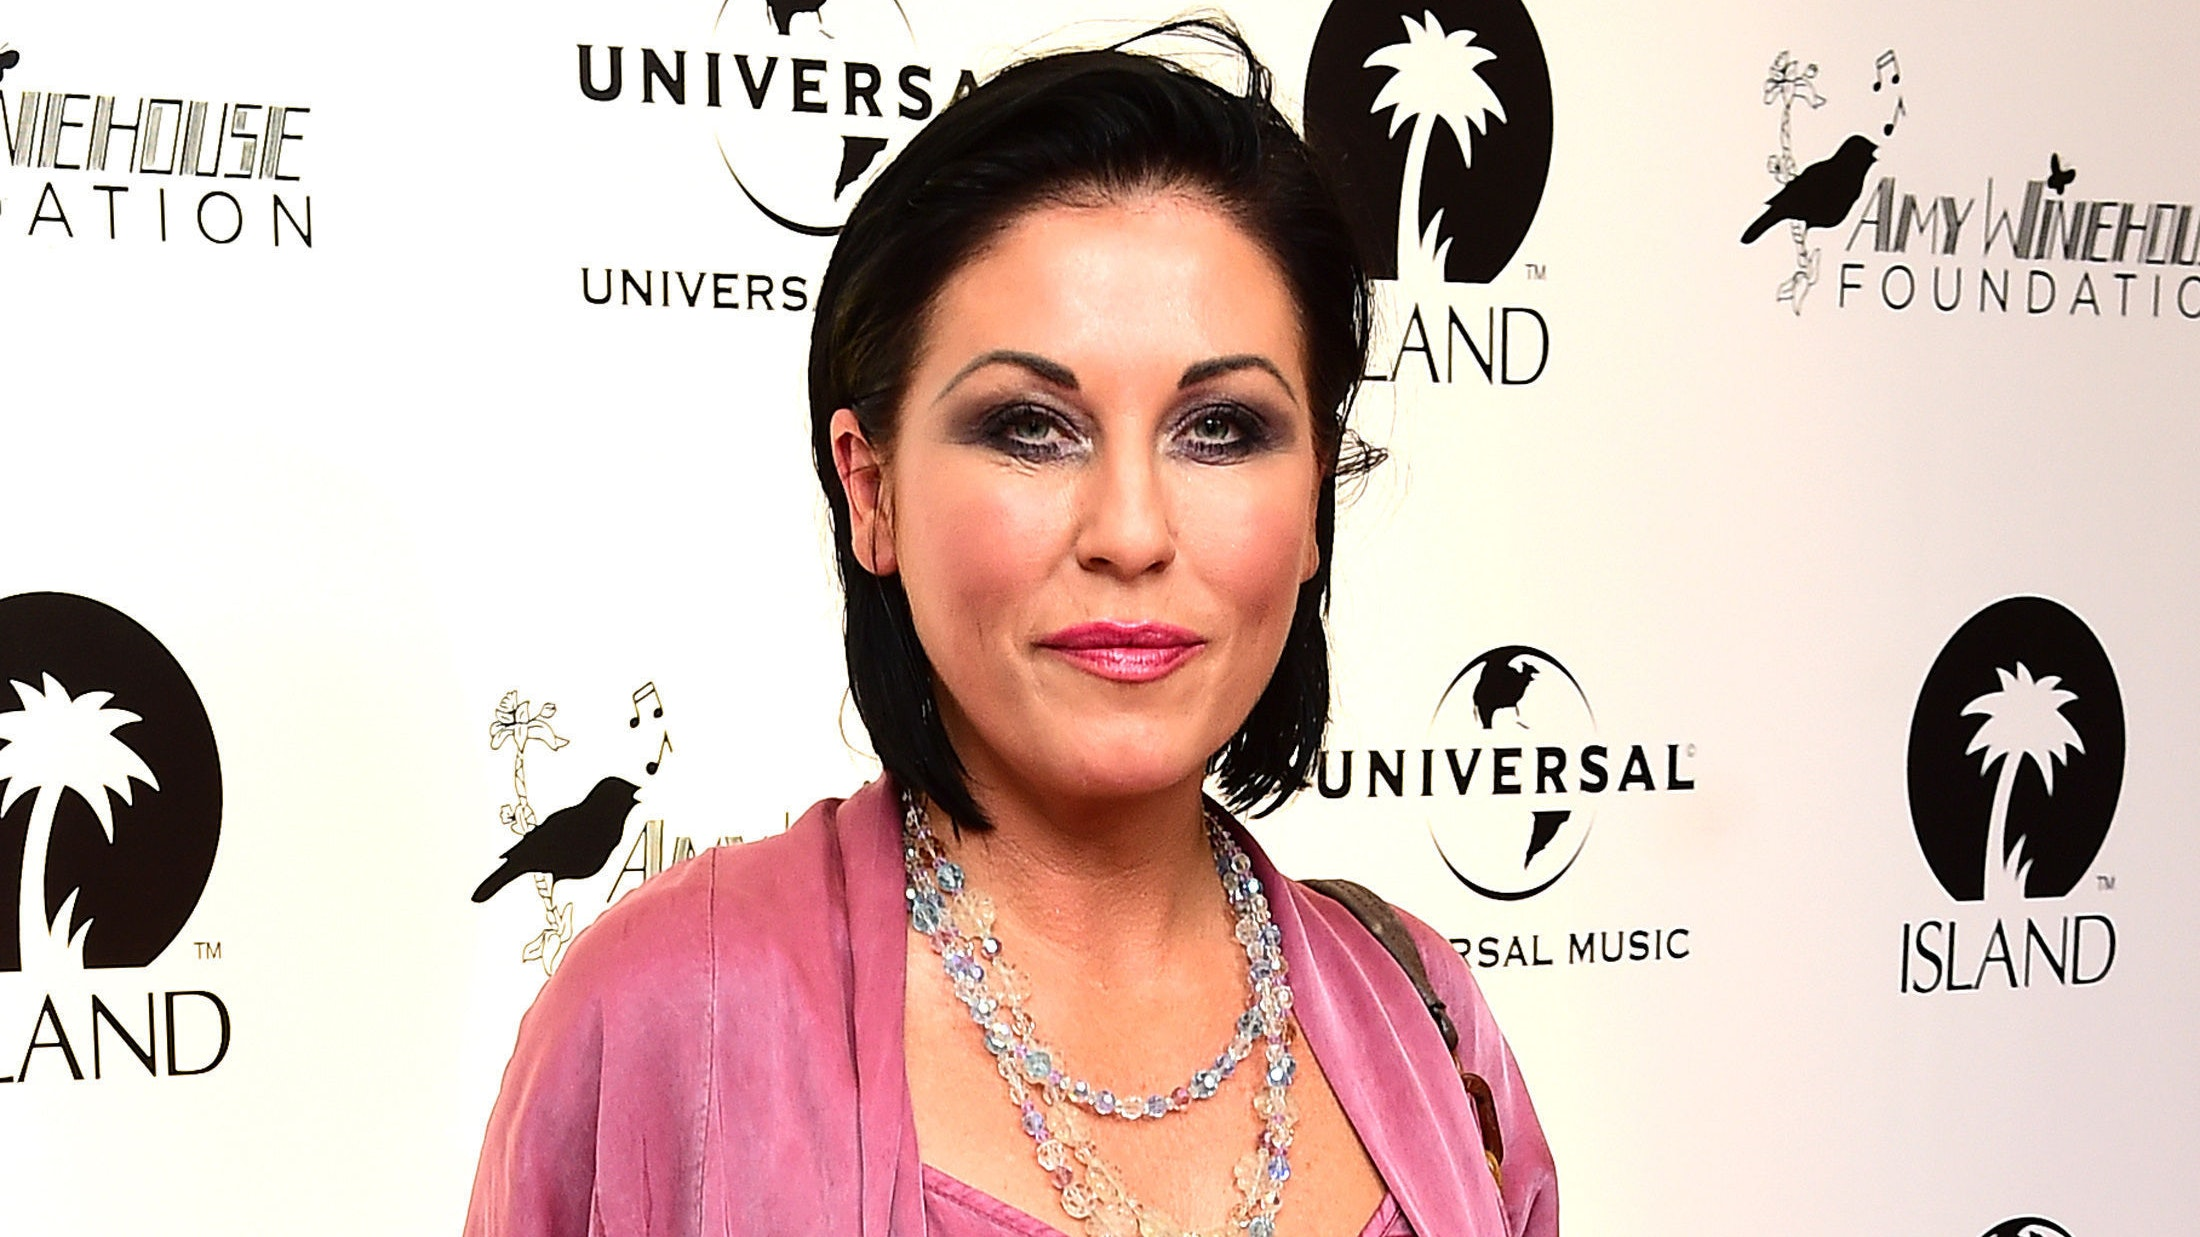 EastEnders' Jessie Wallace reveals fans still shout iconic line at her in street - 15 years on